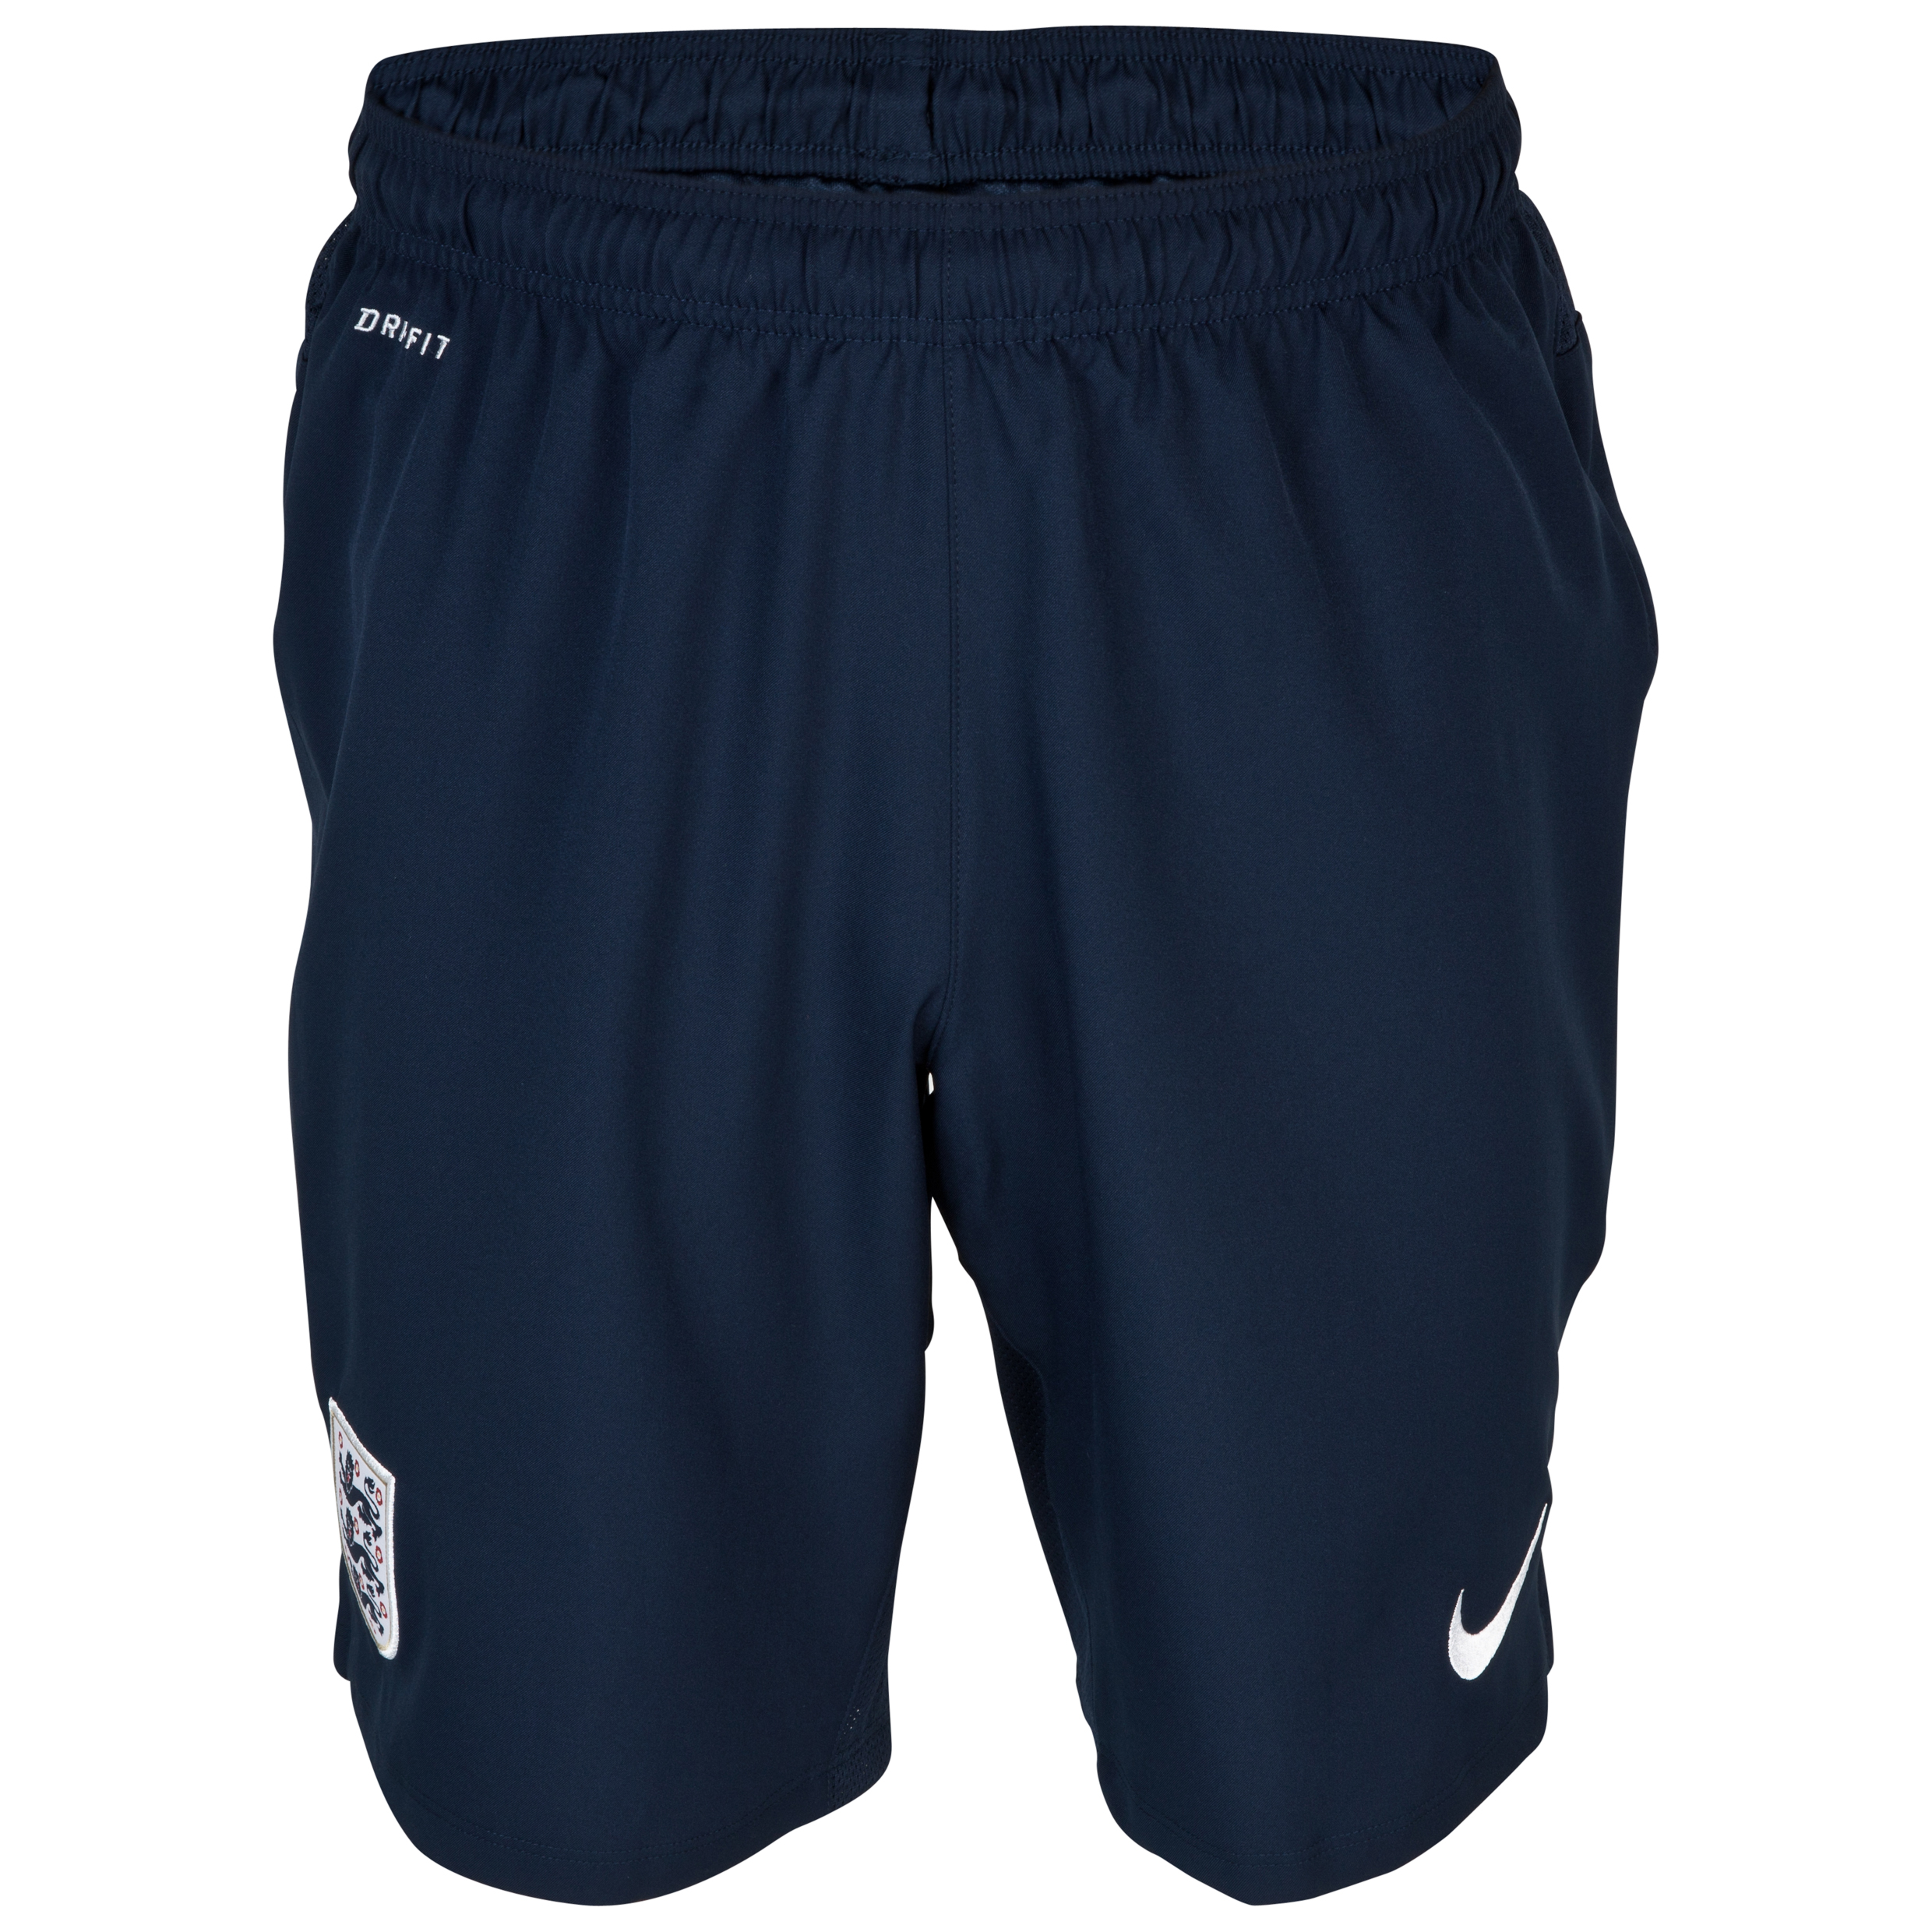 England Home Short 2013/14 - Kids Navy